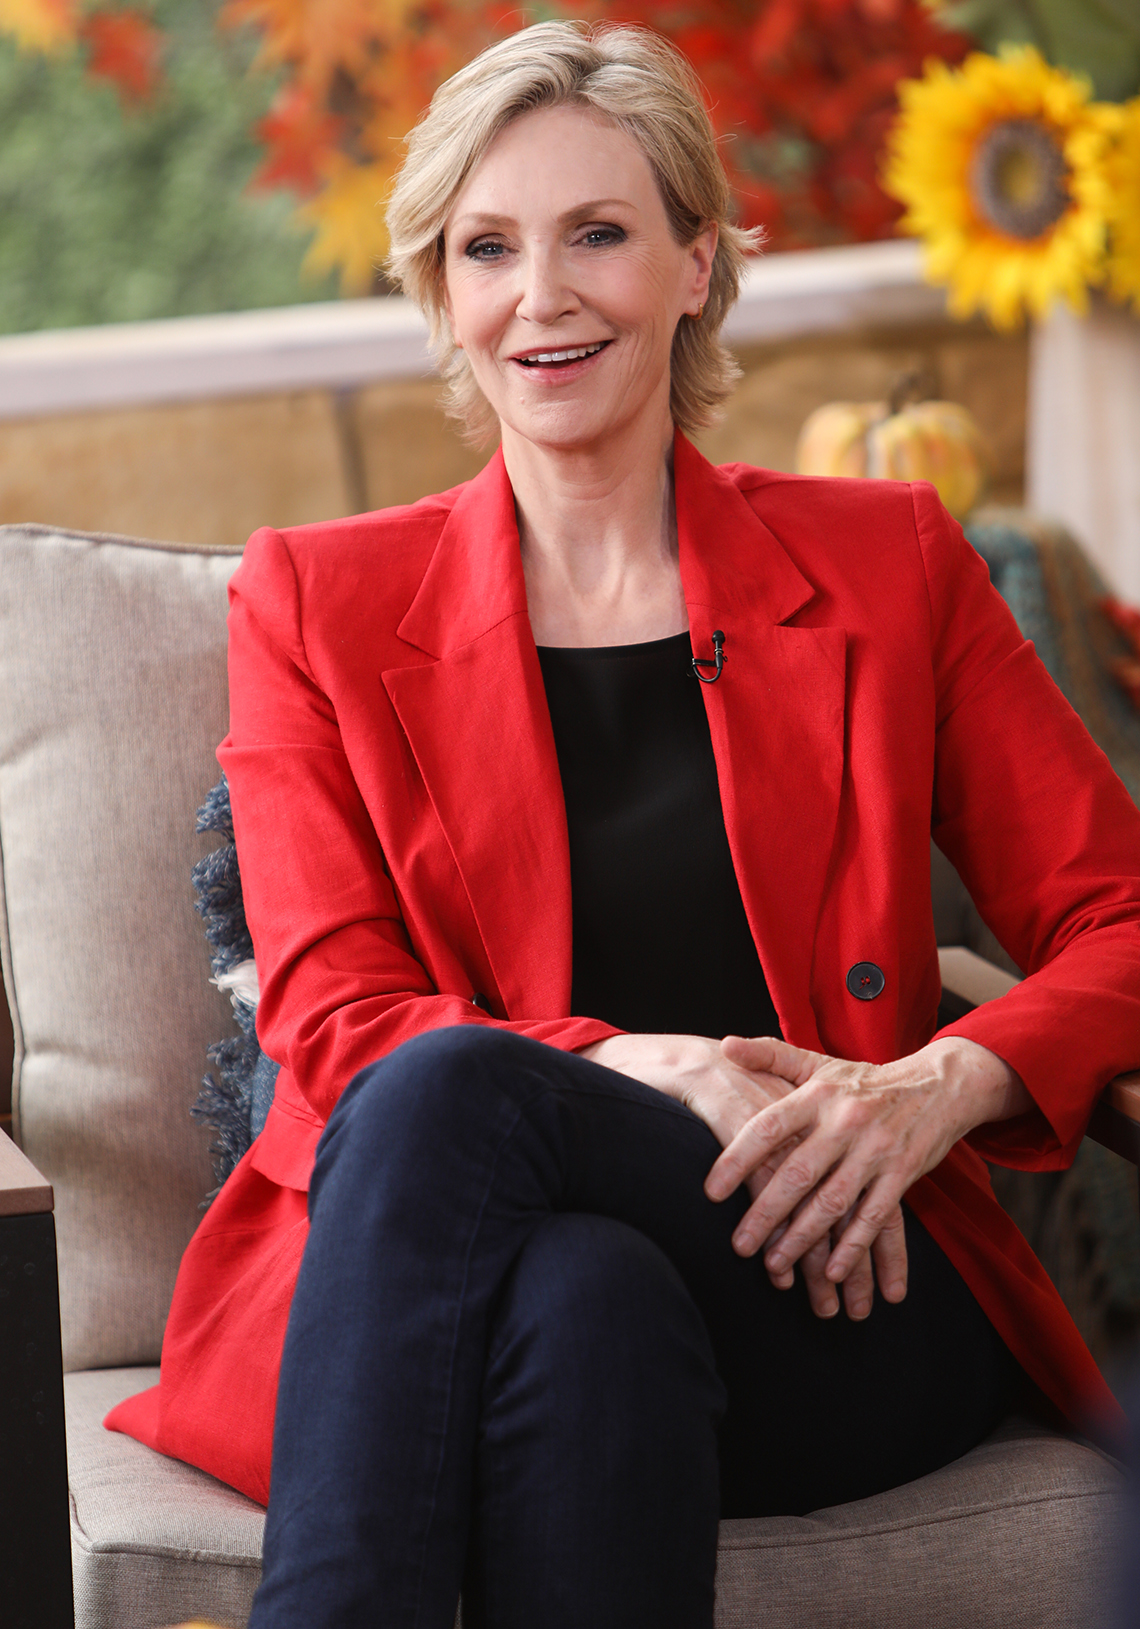 Actress Jane Lynch sitting in a chair in a fall-themed background setting